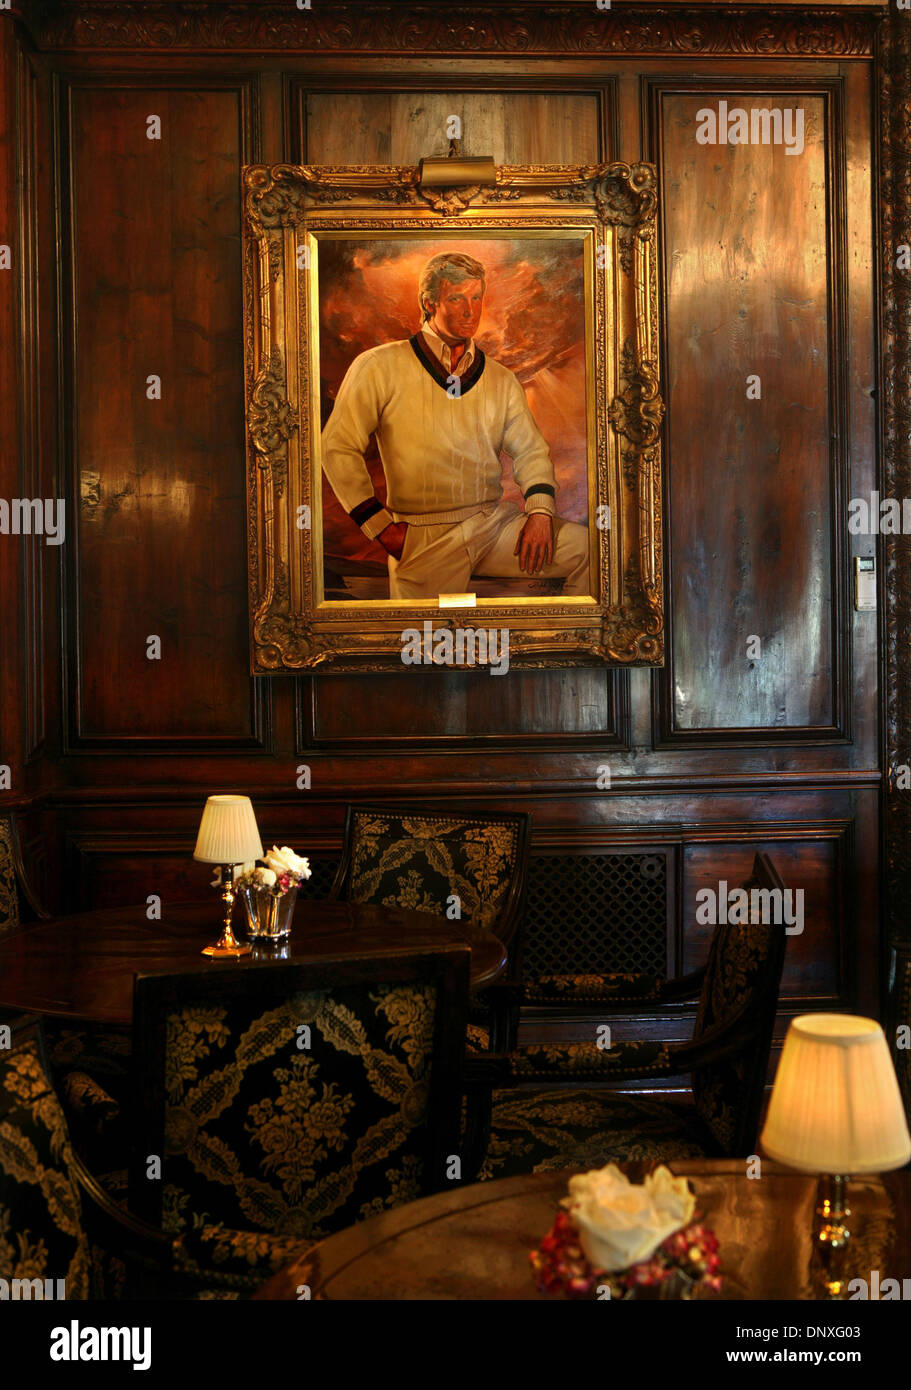 Dec 12, 2005; Palm Beach, FL, USA; US Tabloid Sales OUT!   US MAGS and TV CALL 1-310-397-9165 or (561) 392- 7856 for Price!  A portrait of Trump inside the bar. Photos of the interior and exterior of Donald Trump's Palm Beach Island home ''Mar-A-Lago.''   Mandatory Credit: Photo by Damon Higgins/Palm Beach Post/ZUMA Press. (©) Copyright 2005 by Palm Beach Post - Stock Image